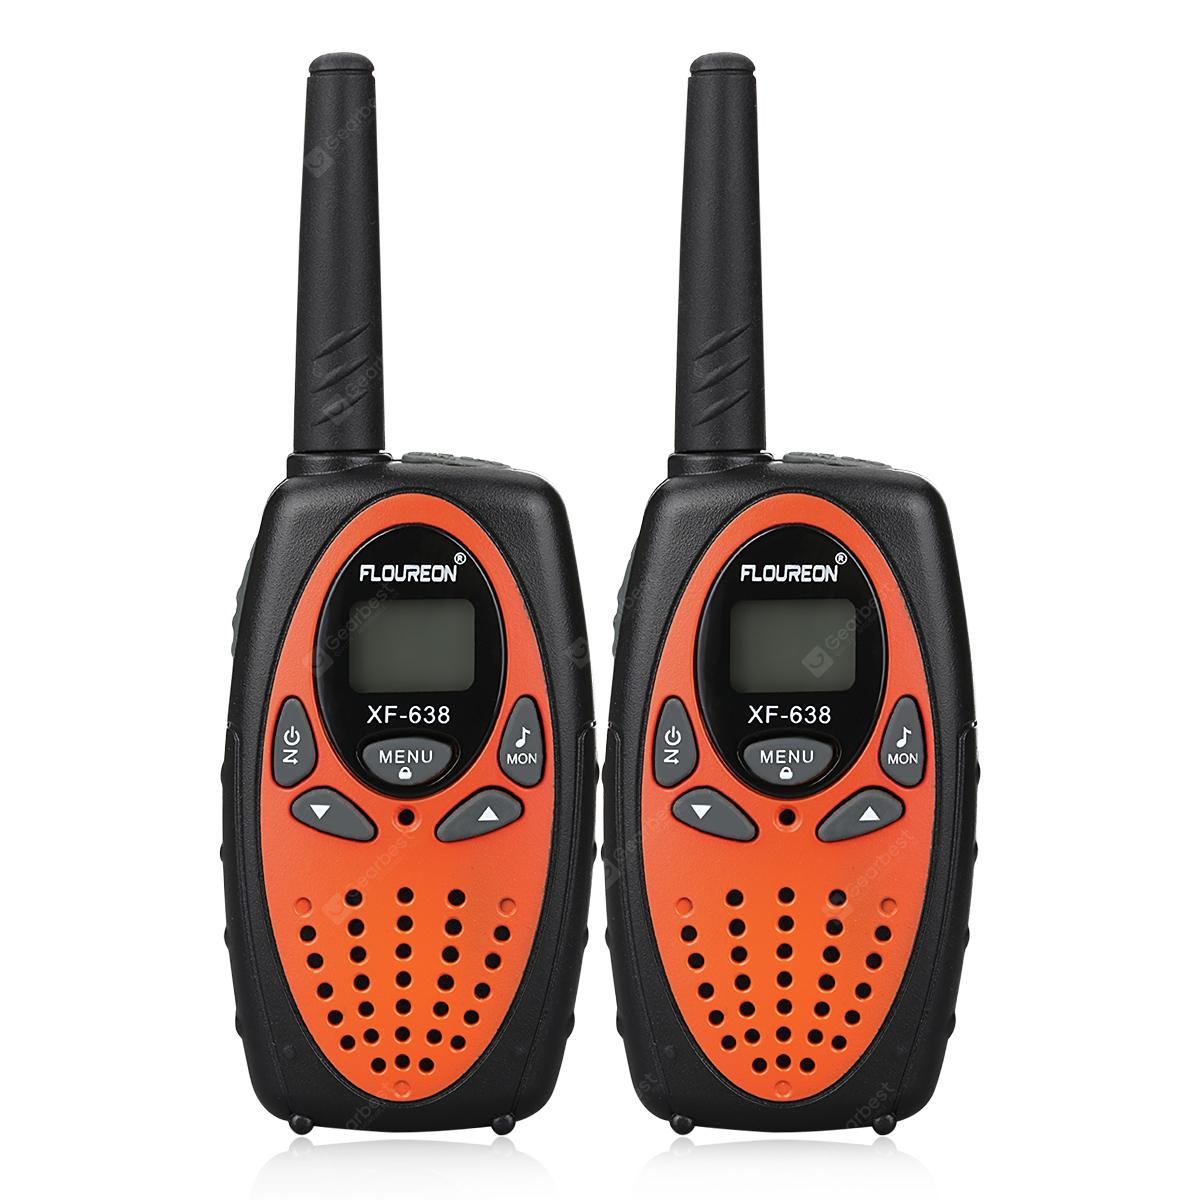 FLOUREON XF - 638 8 Channels Walkie Talkies 2pcs